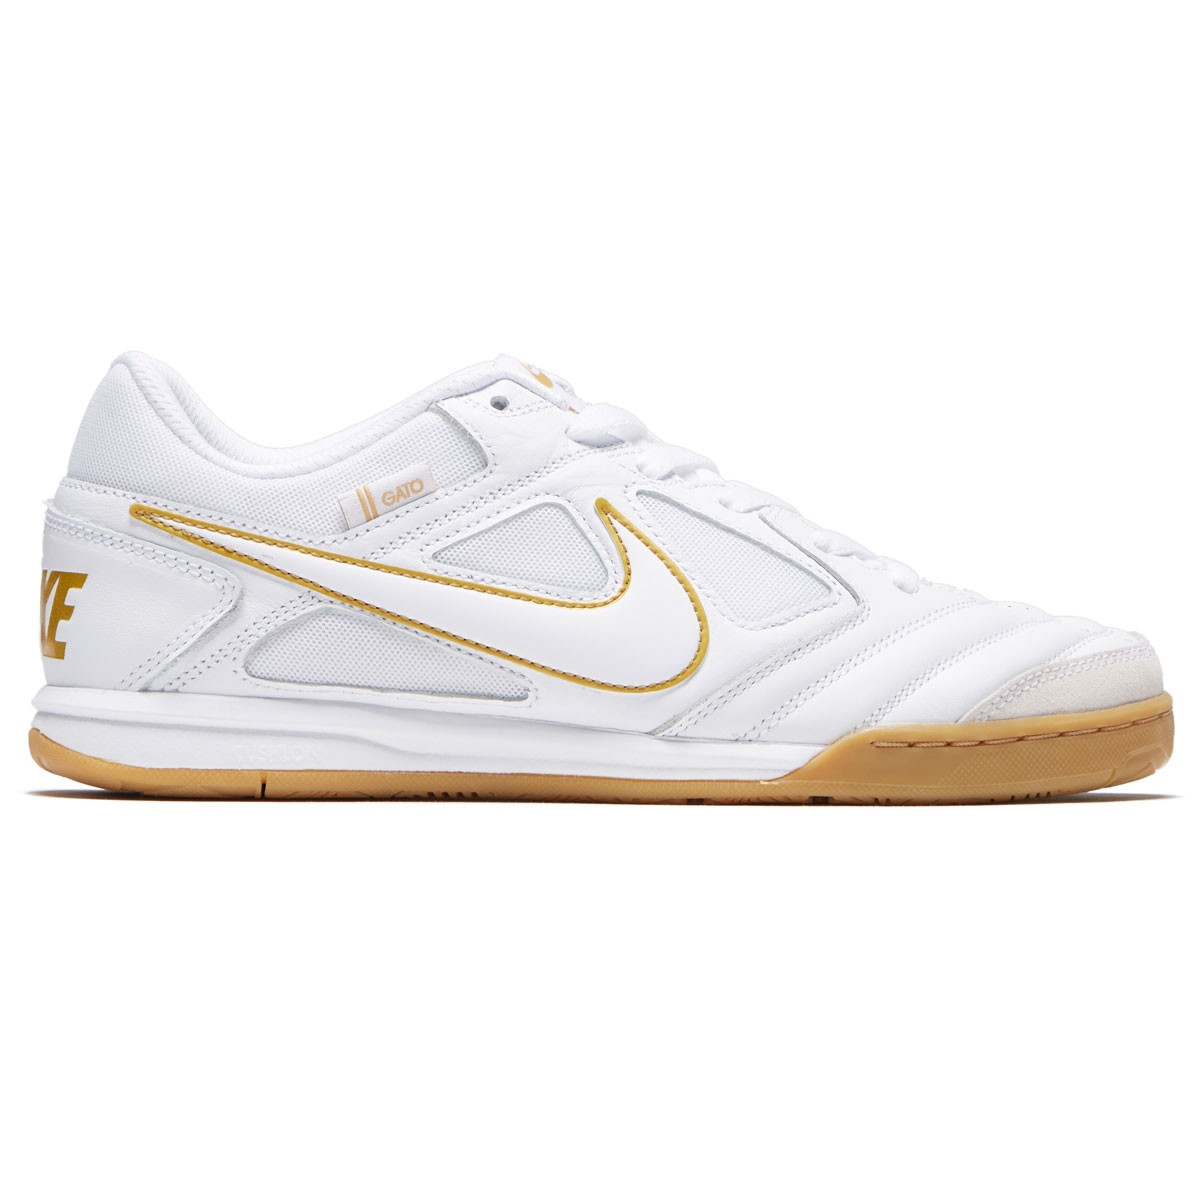 be0c35ce81ae Nike SB Gato Shoes - White White Metallic Gold - 10.0